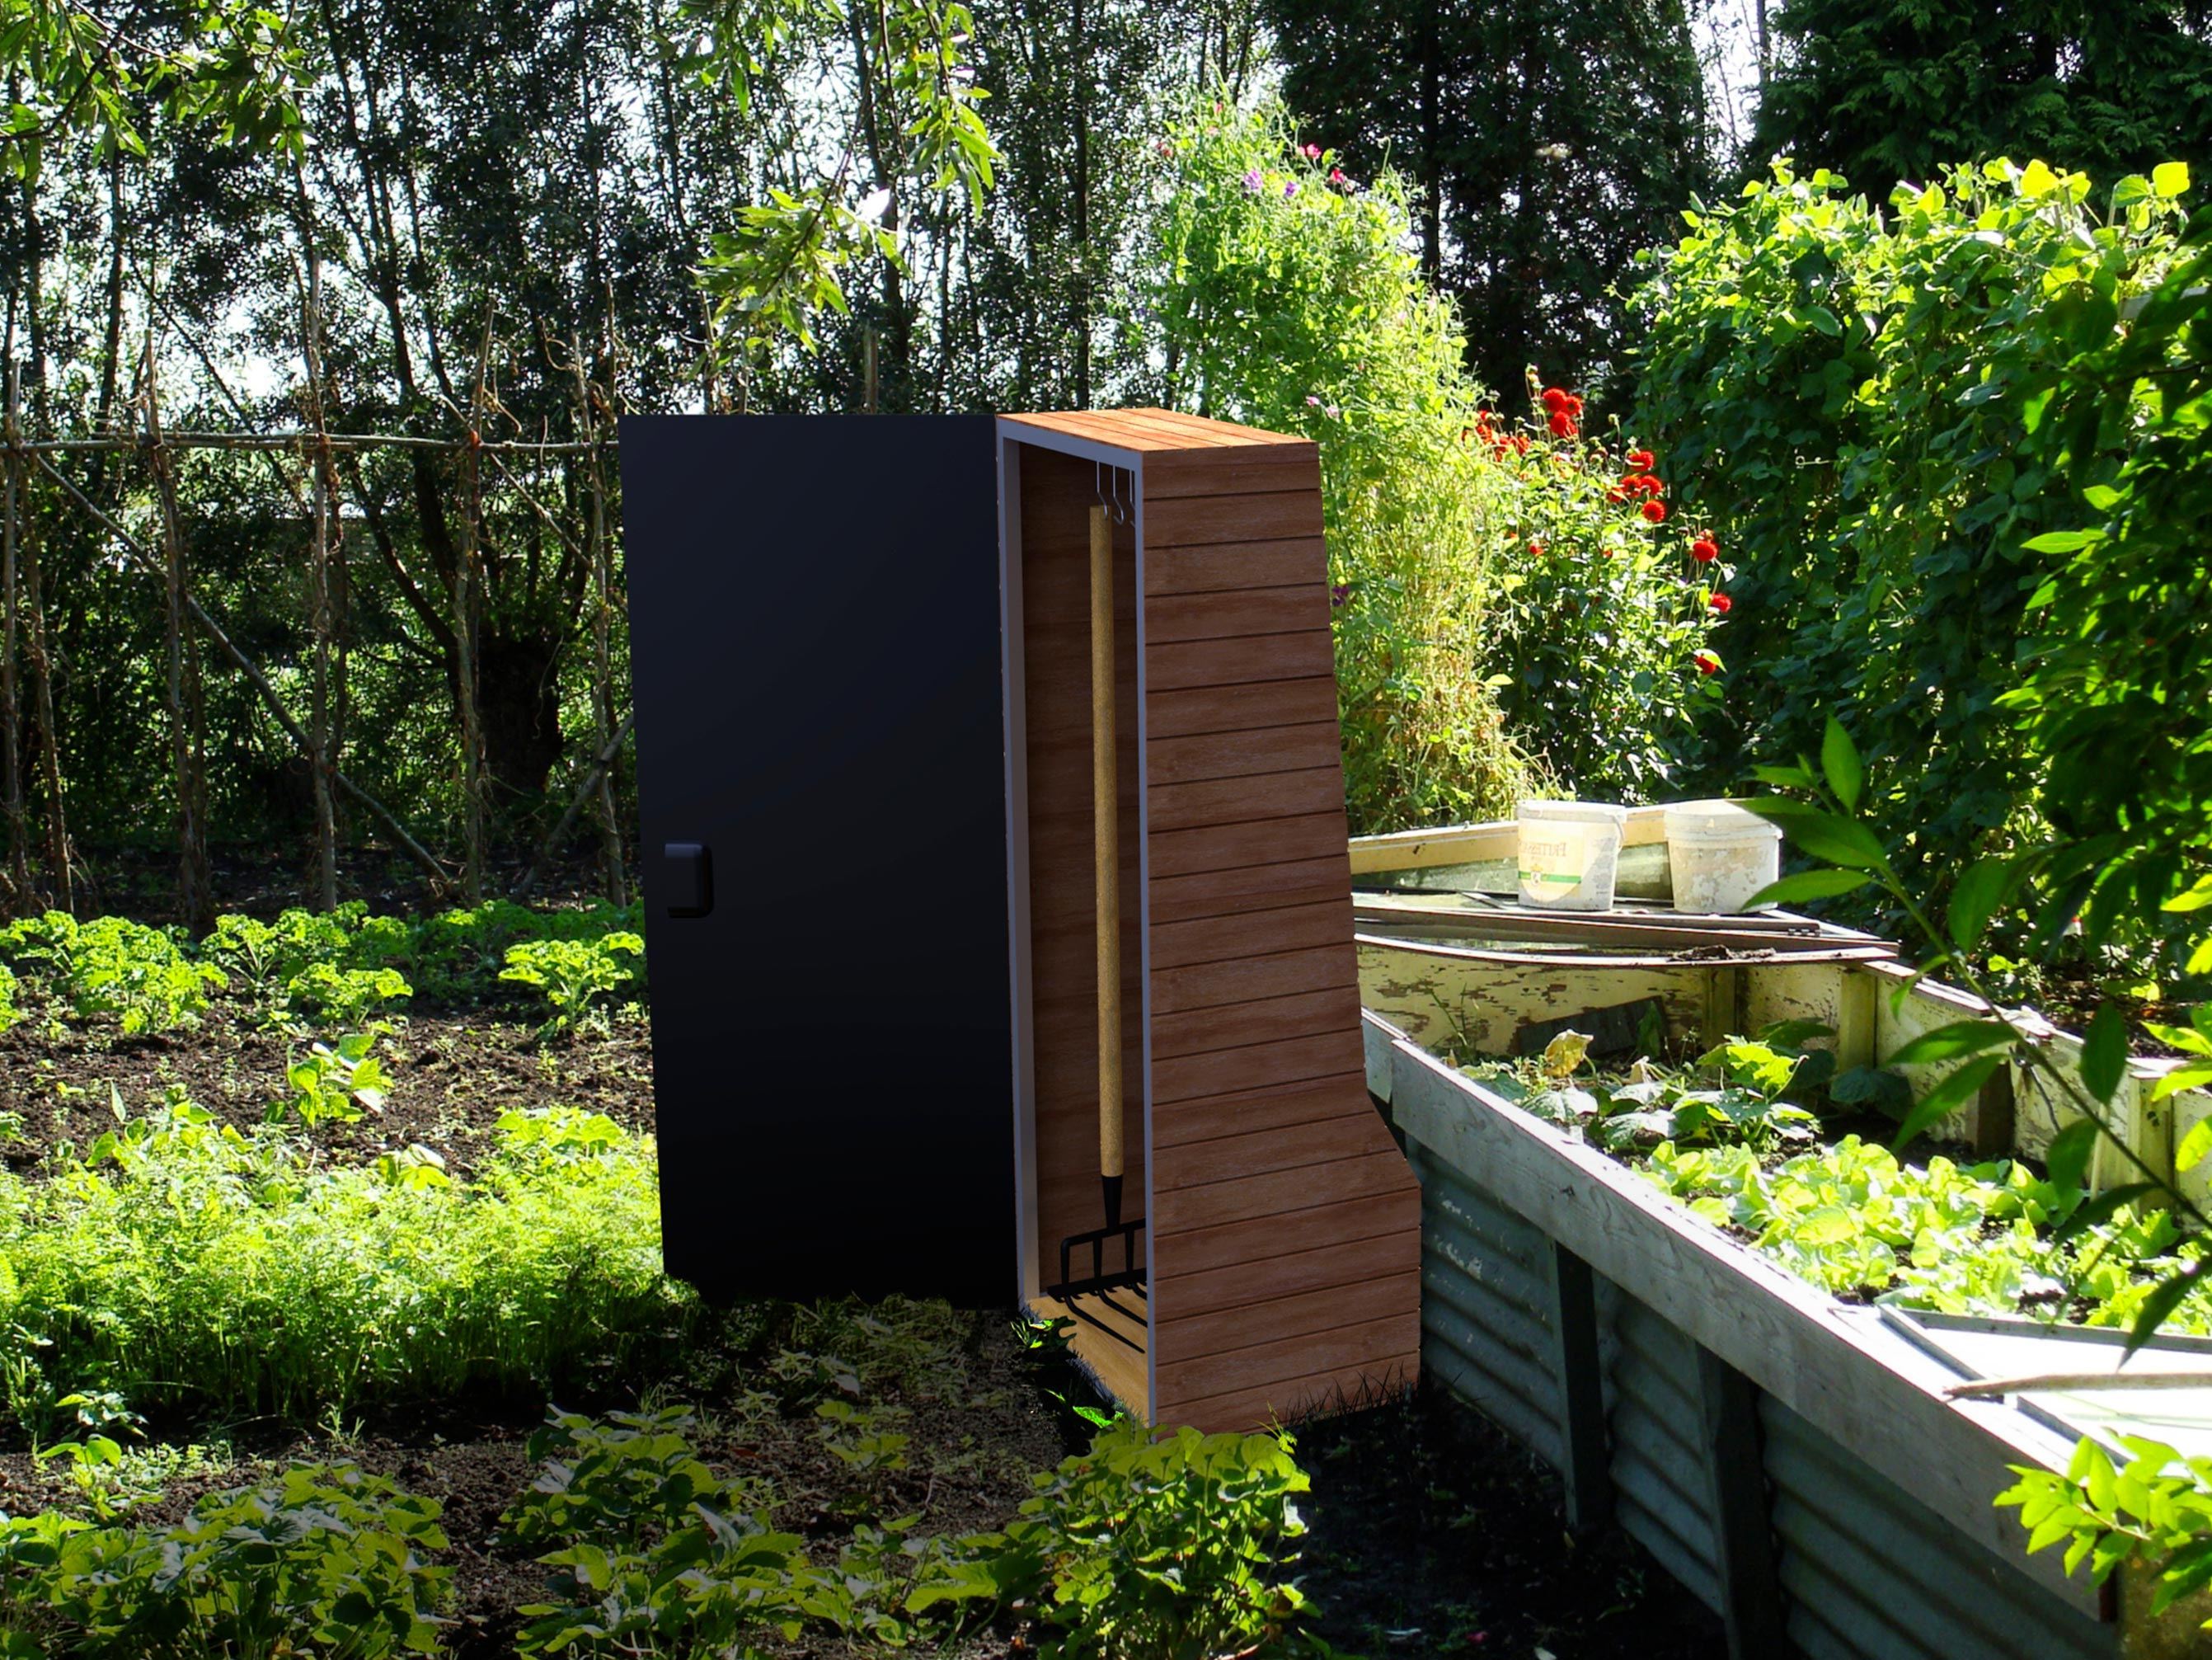 inblocks_abri_de_jardin_garden_shed_outside_living_industries_mise_en_situation2-pierre-felix-so